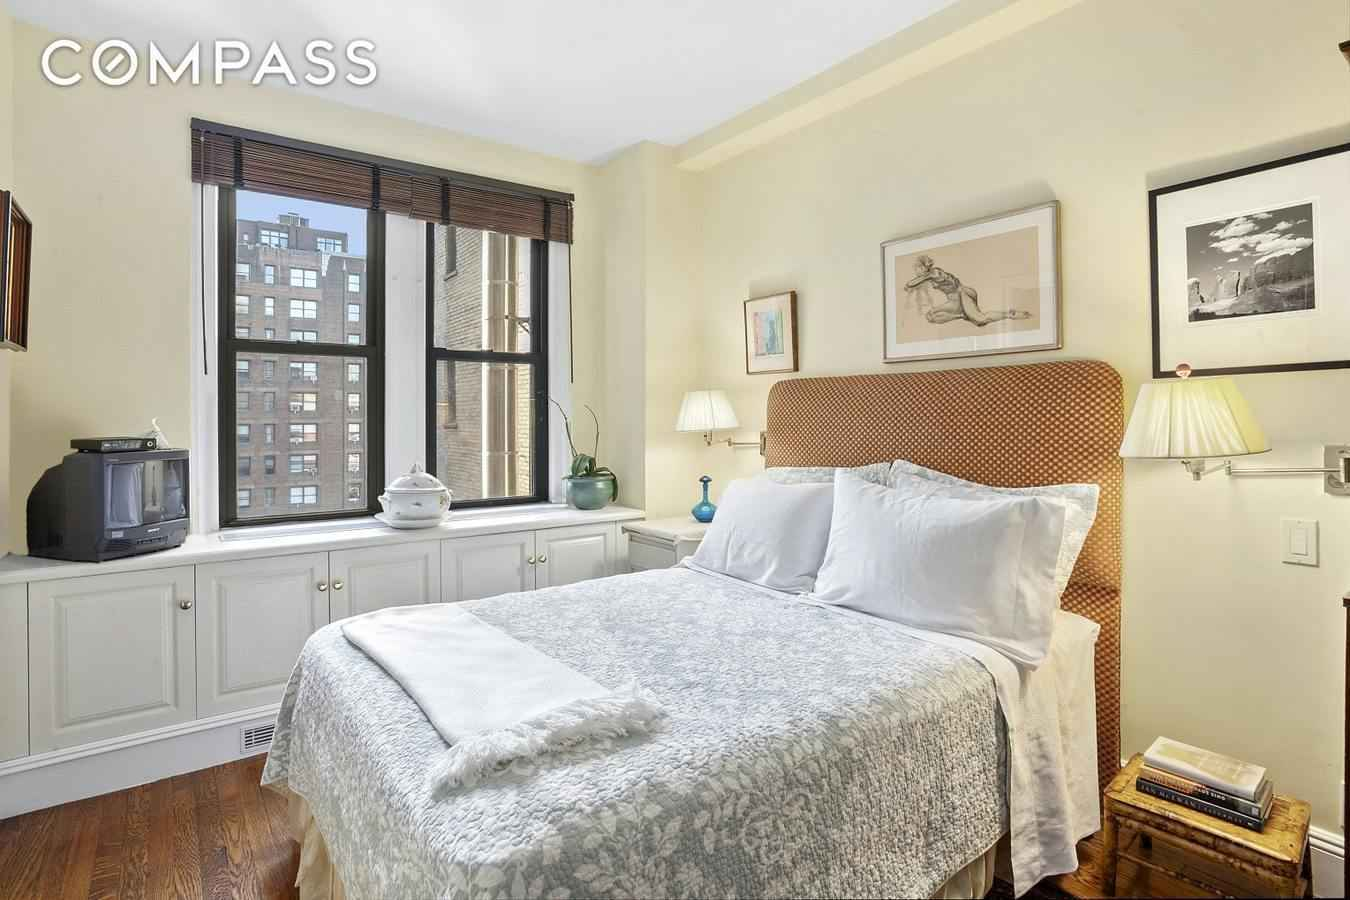 Apartment for sale at 400 East 59th Street, Apt 12-E